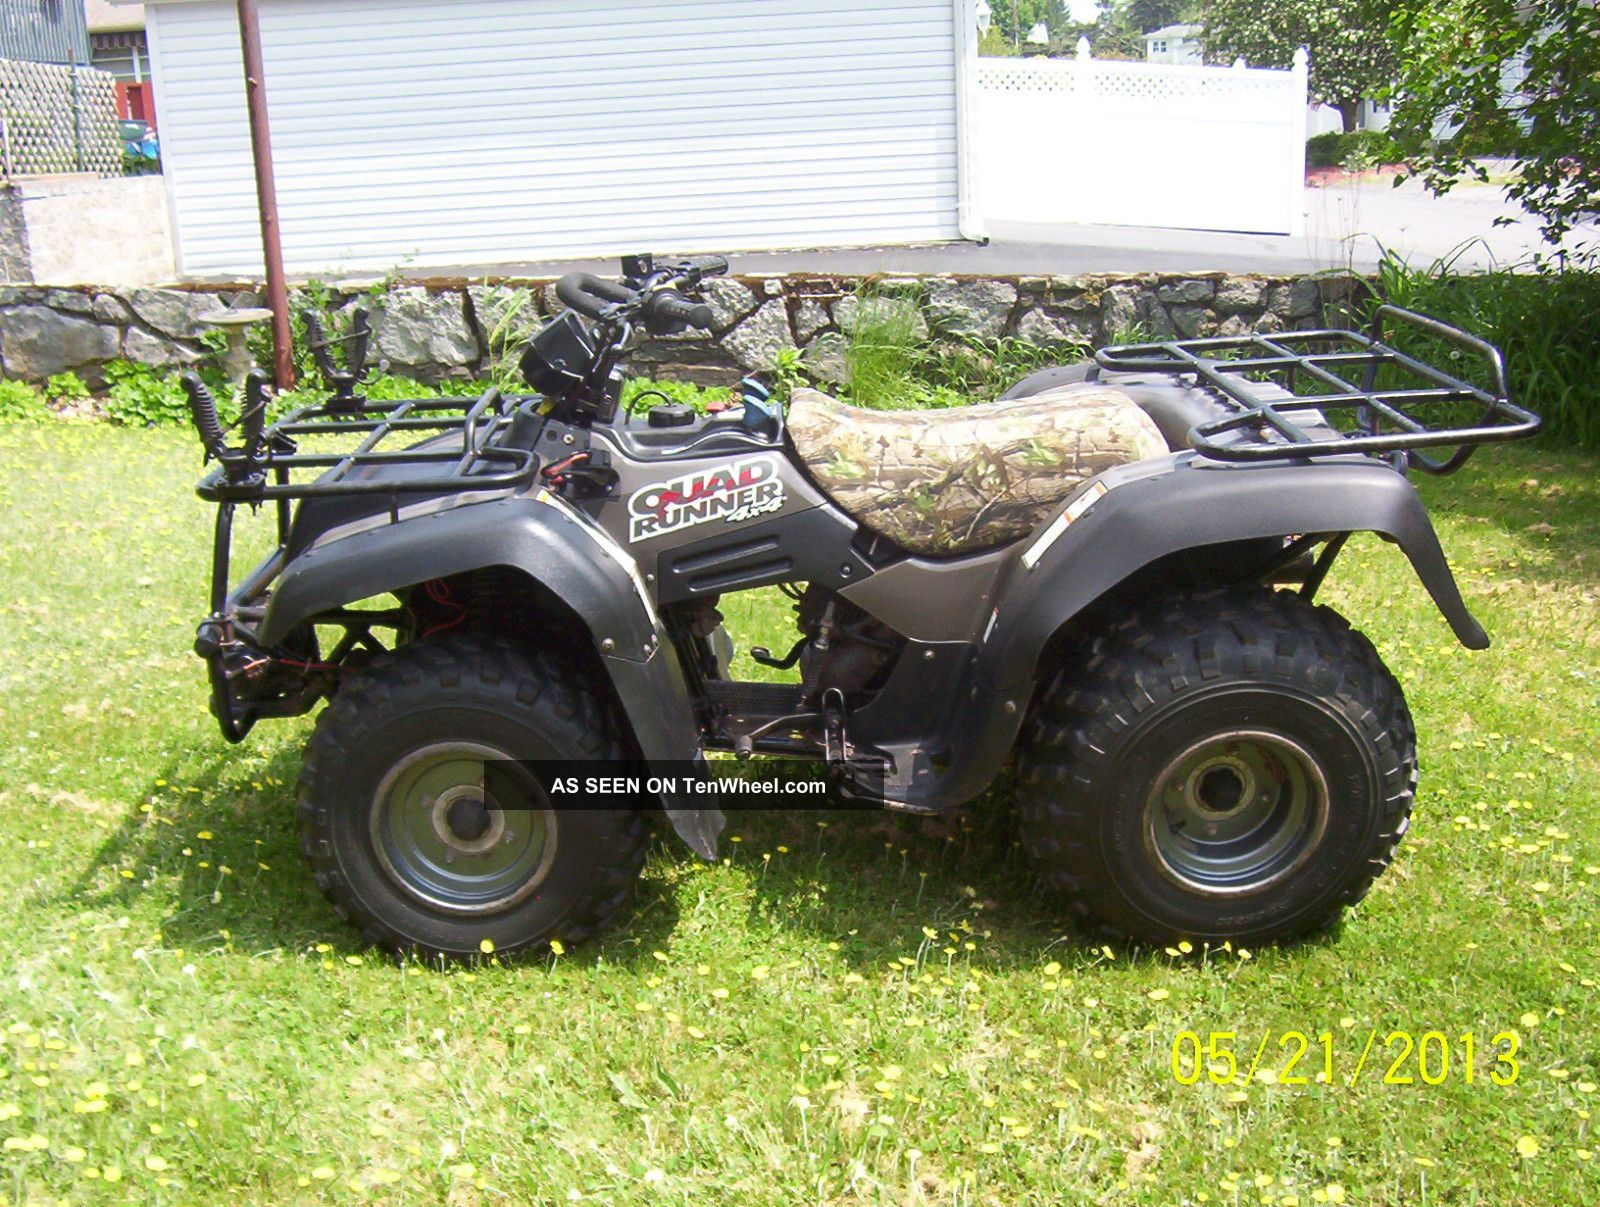 2004 kawasaki bayou 250 wiring diagram images in addition polaris 500 carb diagram polaris engine image for user manual